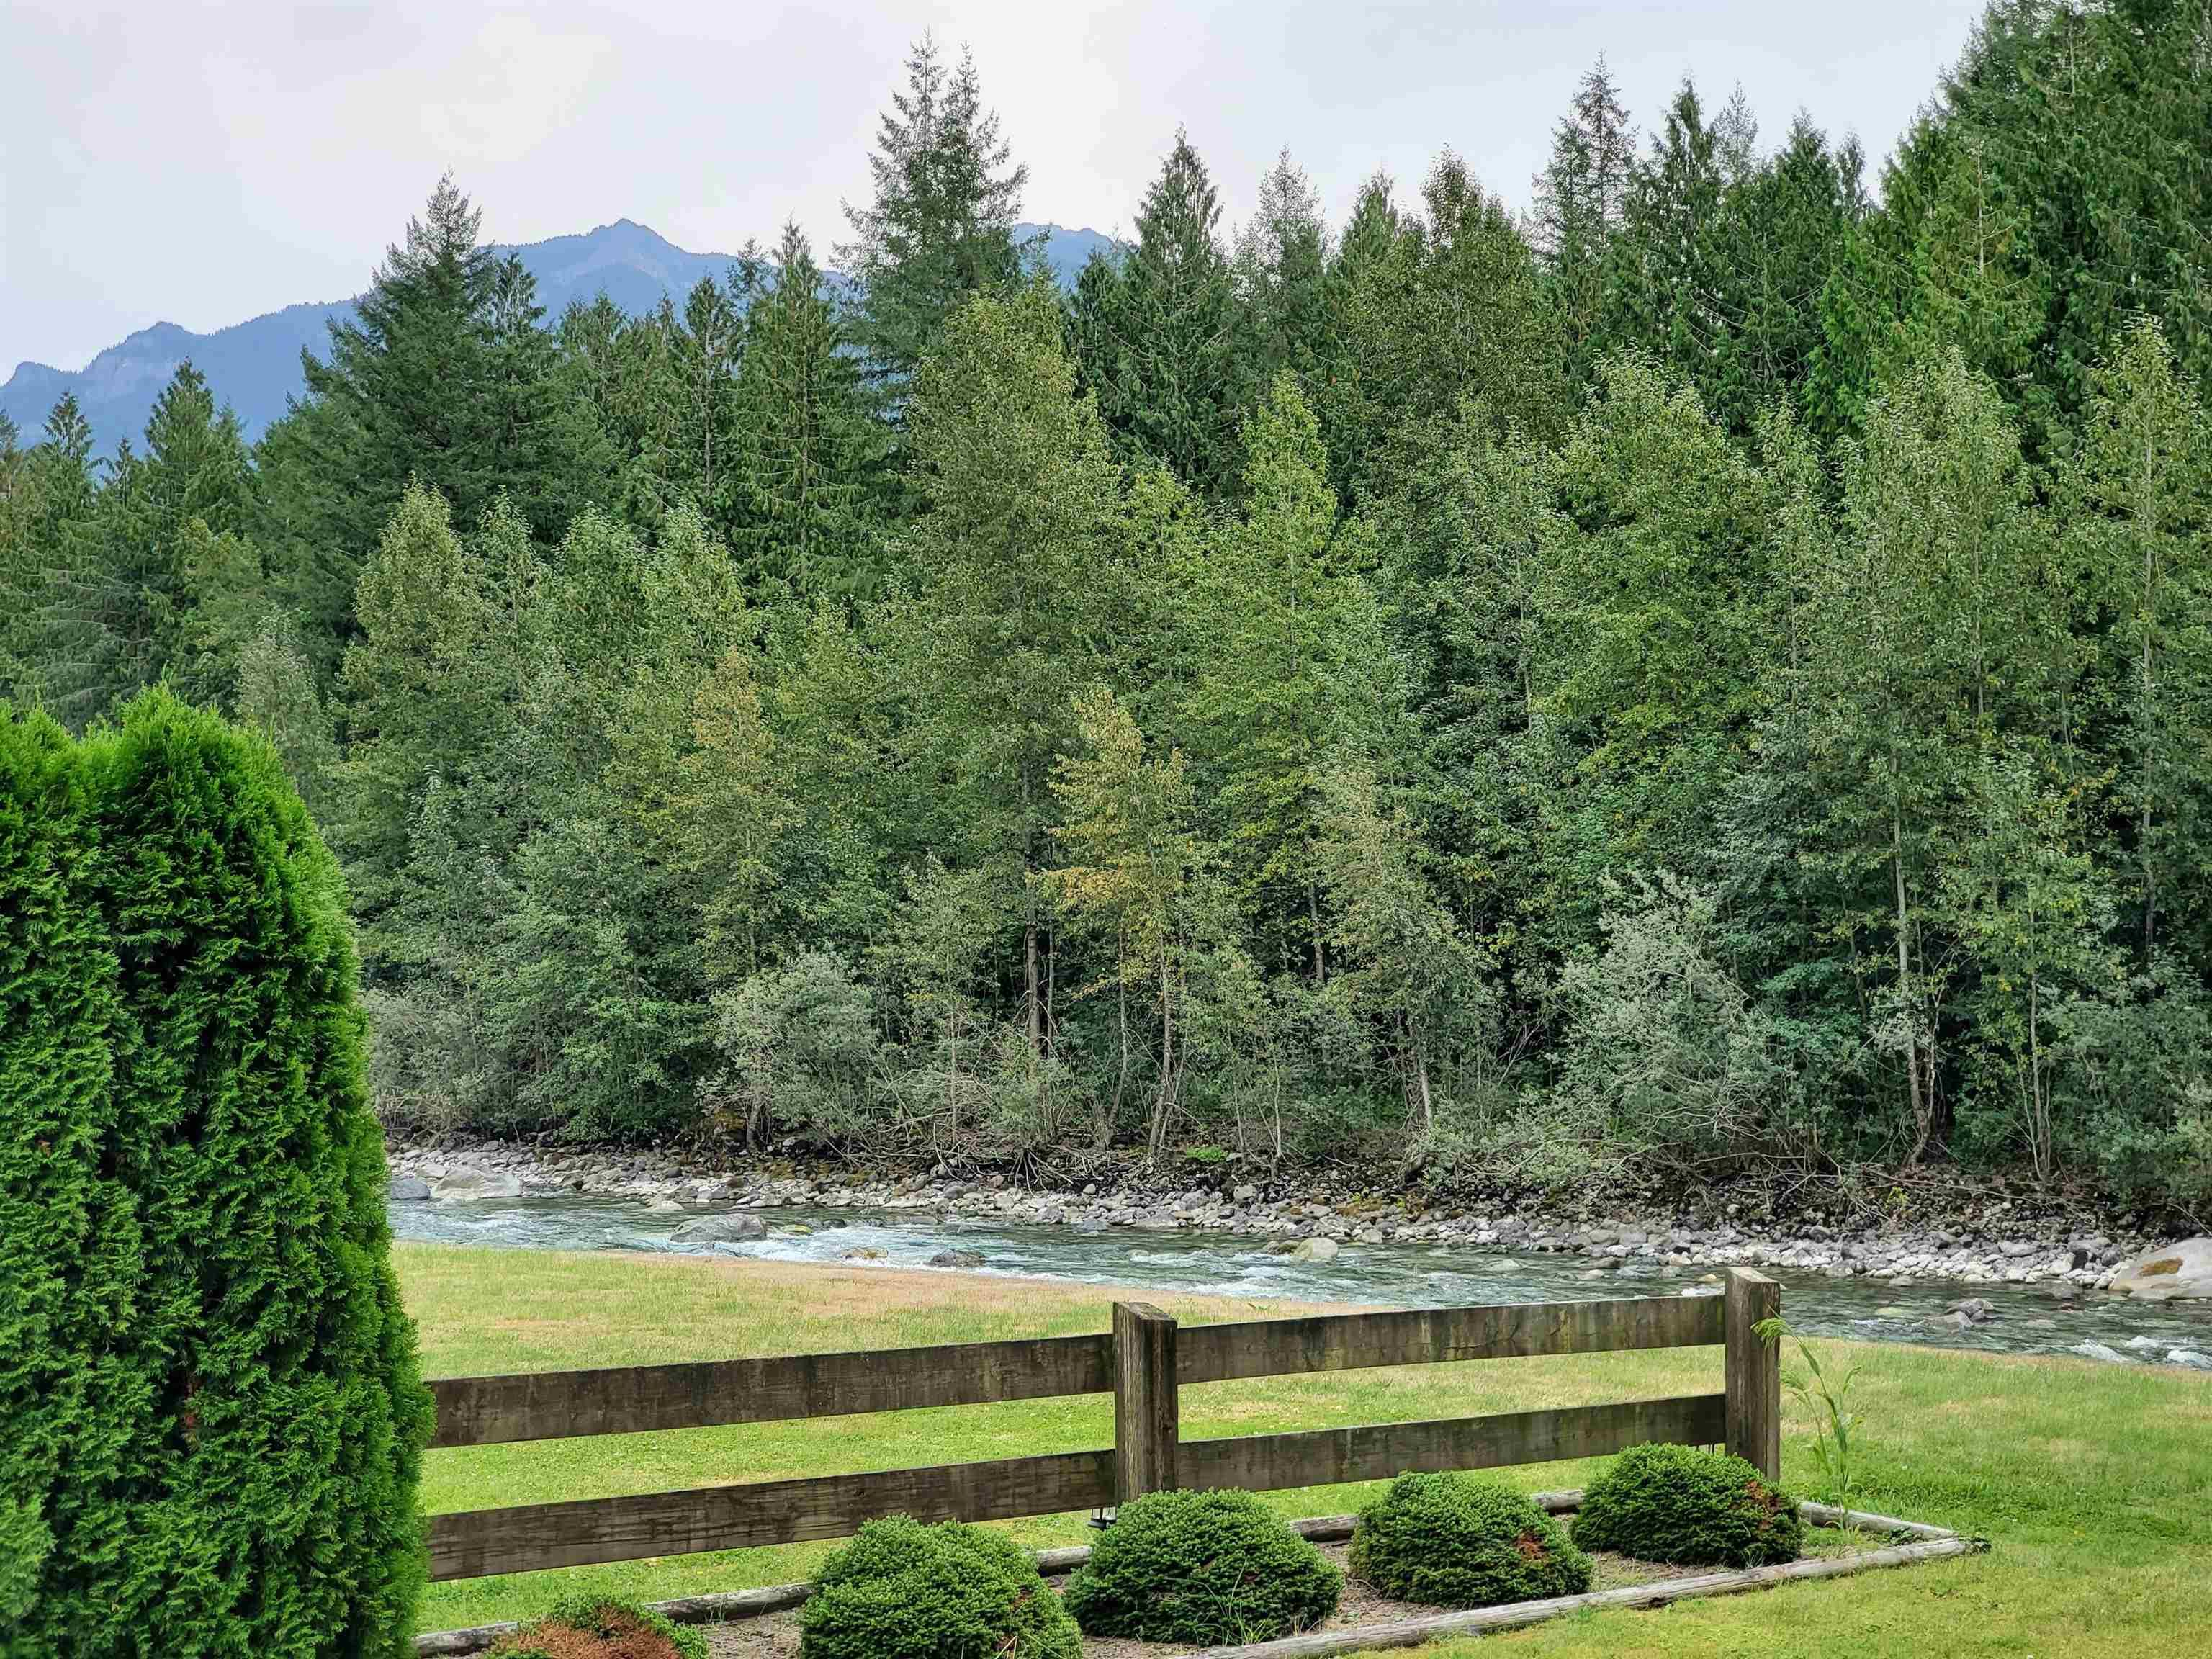 Main Photo: 49342 NEVILLE Road in Chilliwack: Chilliwack River Valley House for sale (Sardis)  : MLS®# R2607477